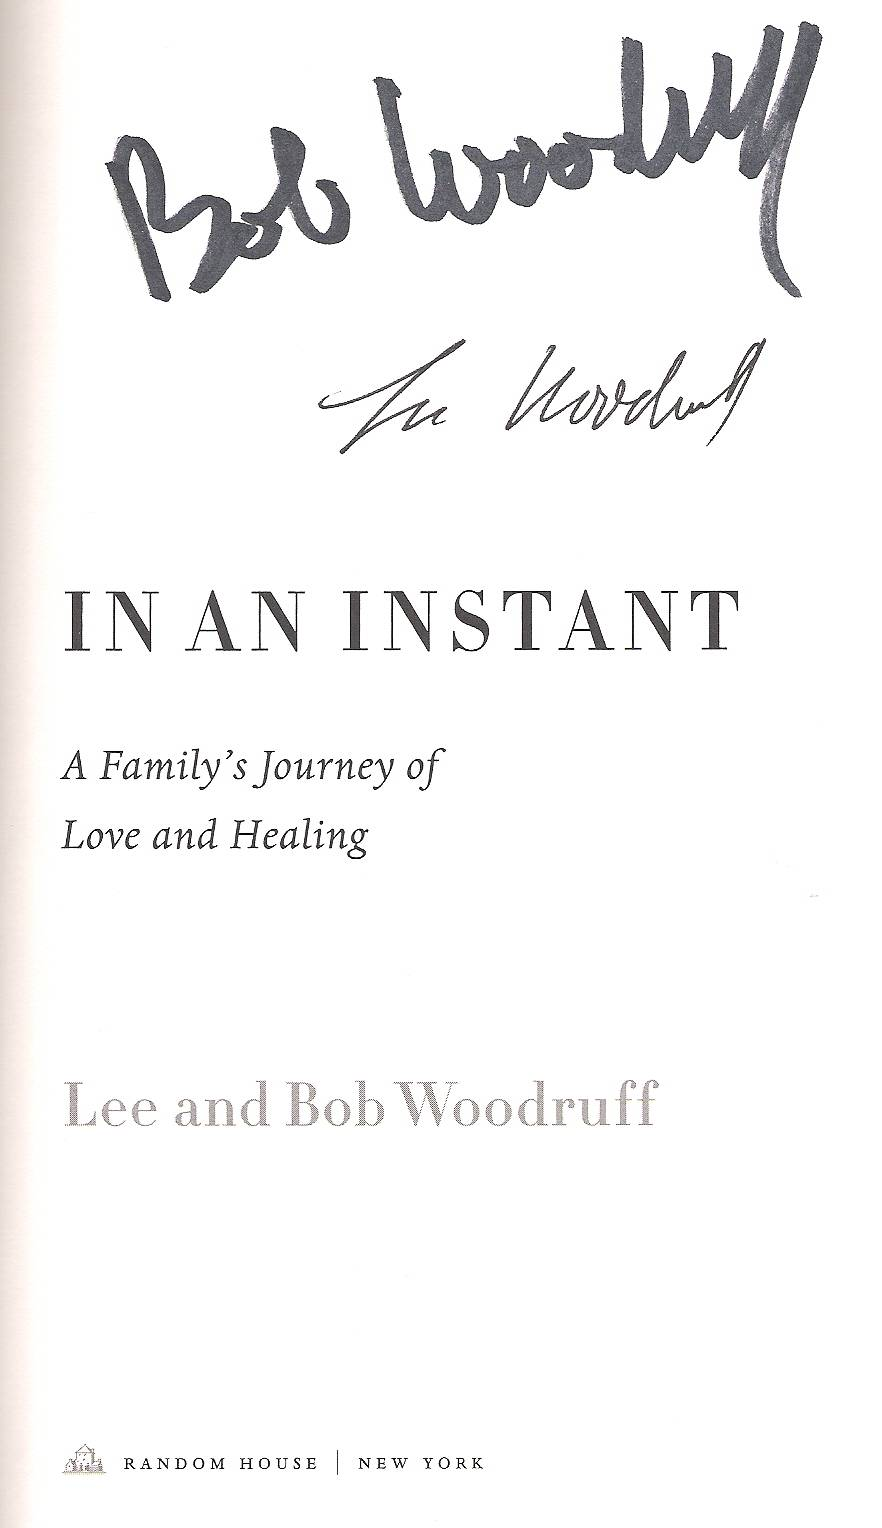 Bob & Lee Woodruff